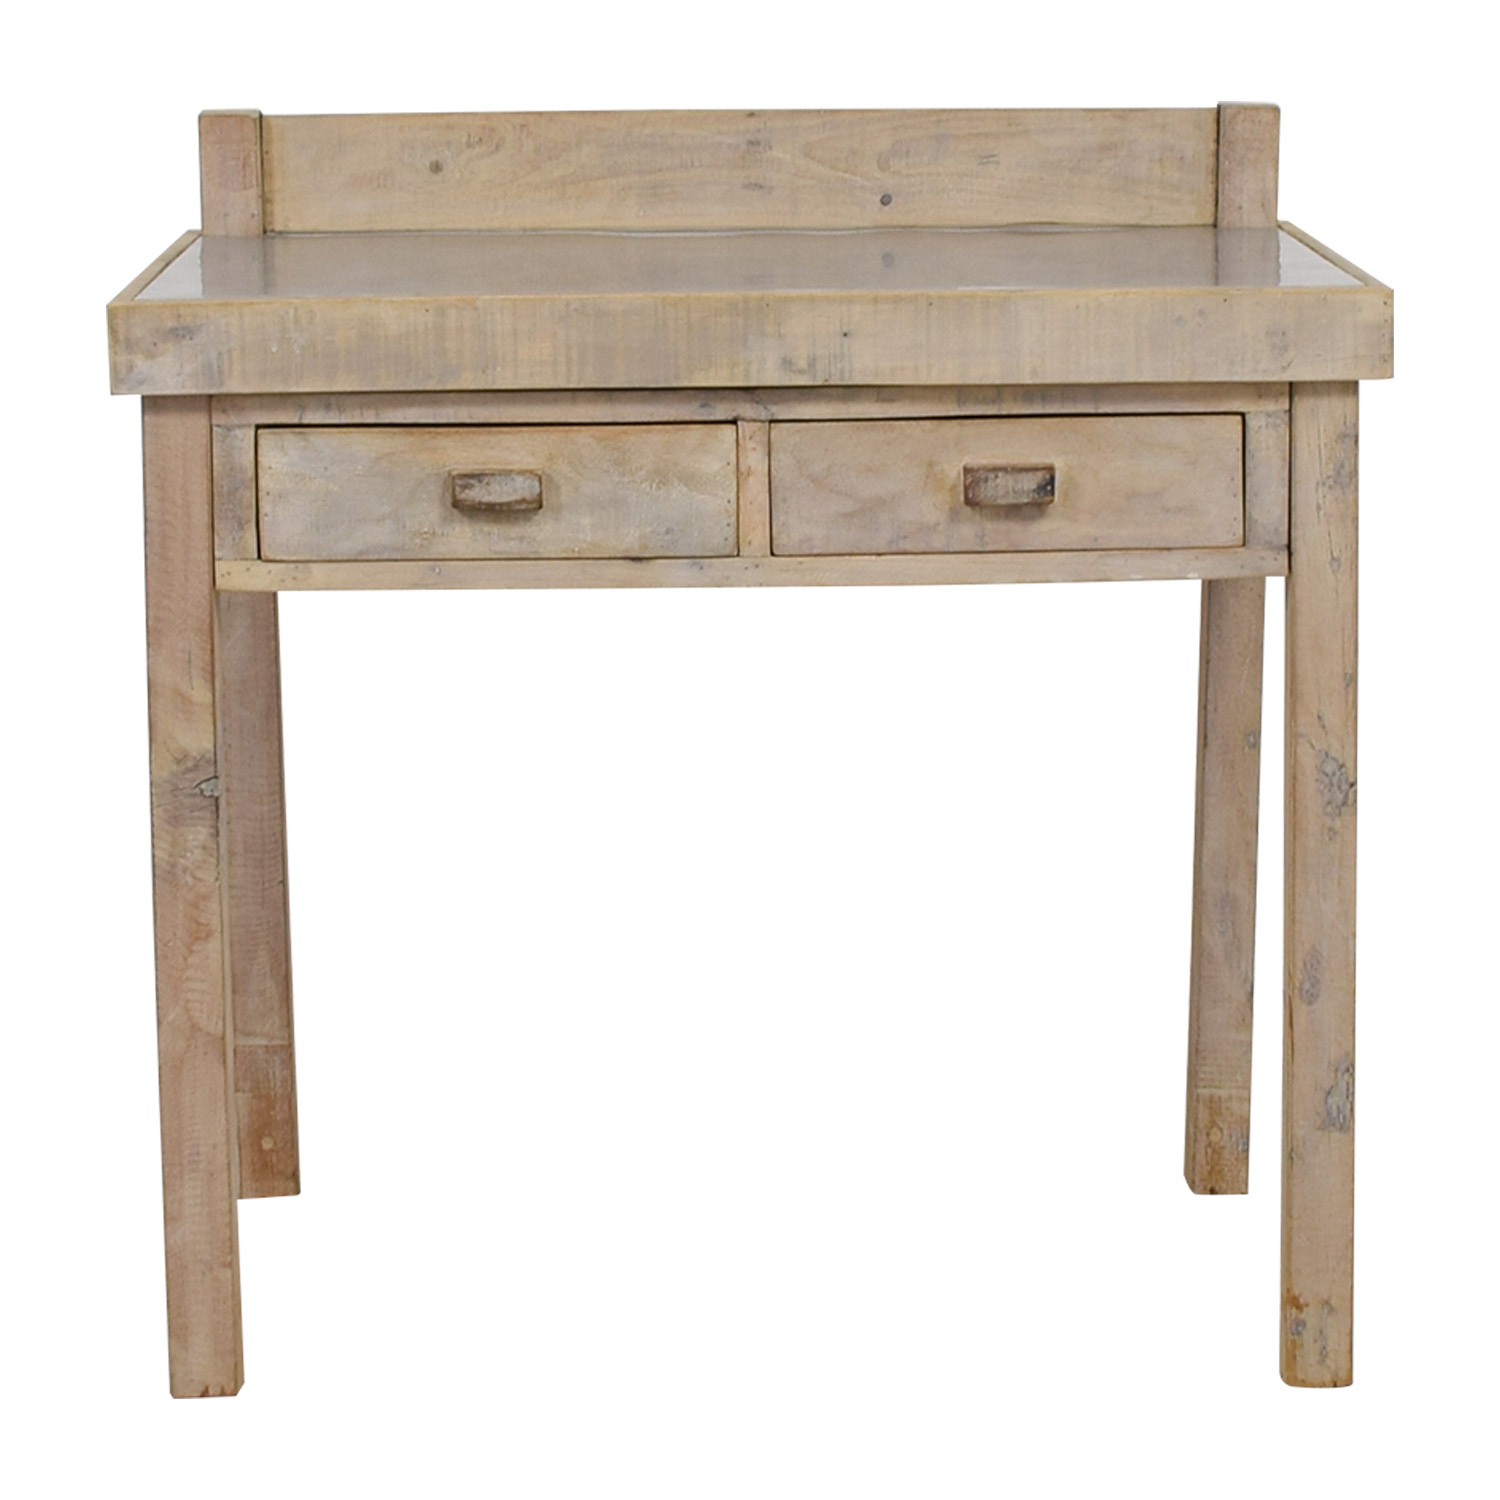 Tree Hong Kong Tree Hong Kong Reclaimed Wood Console dimensions